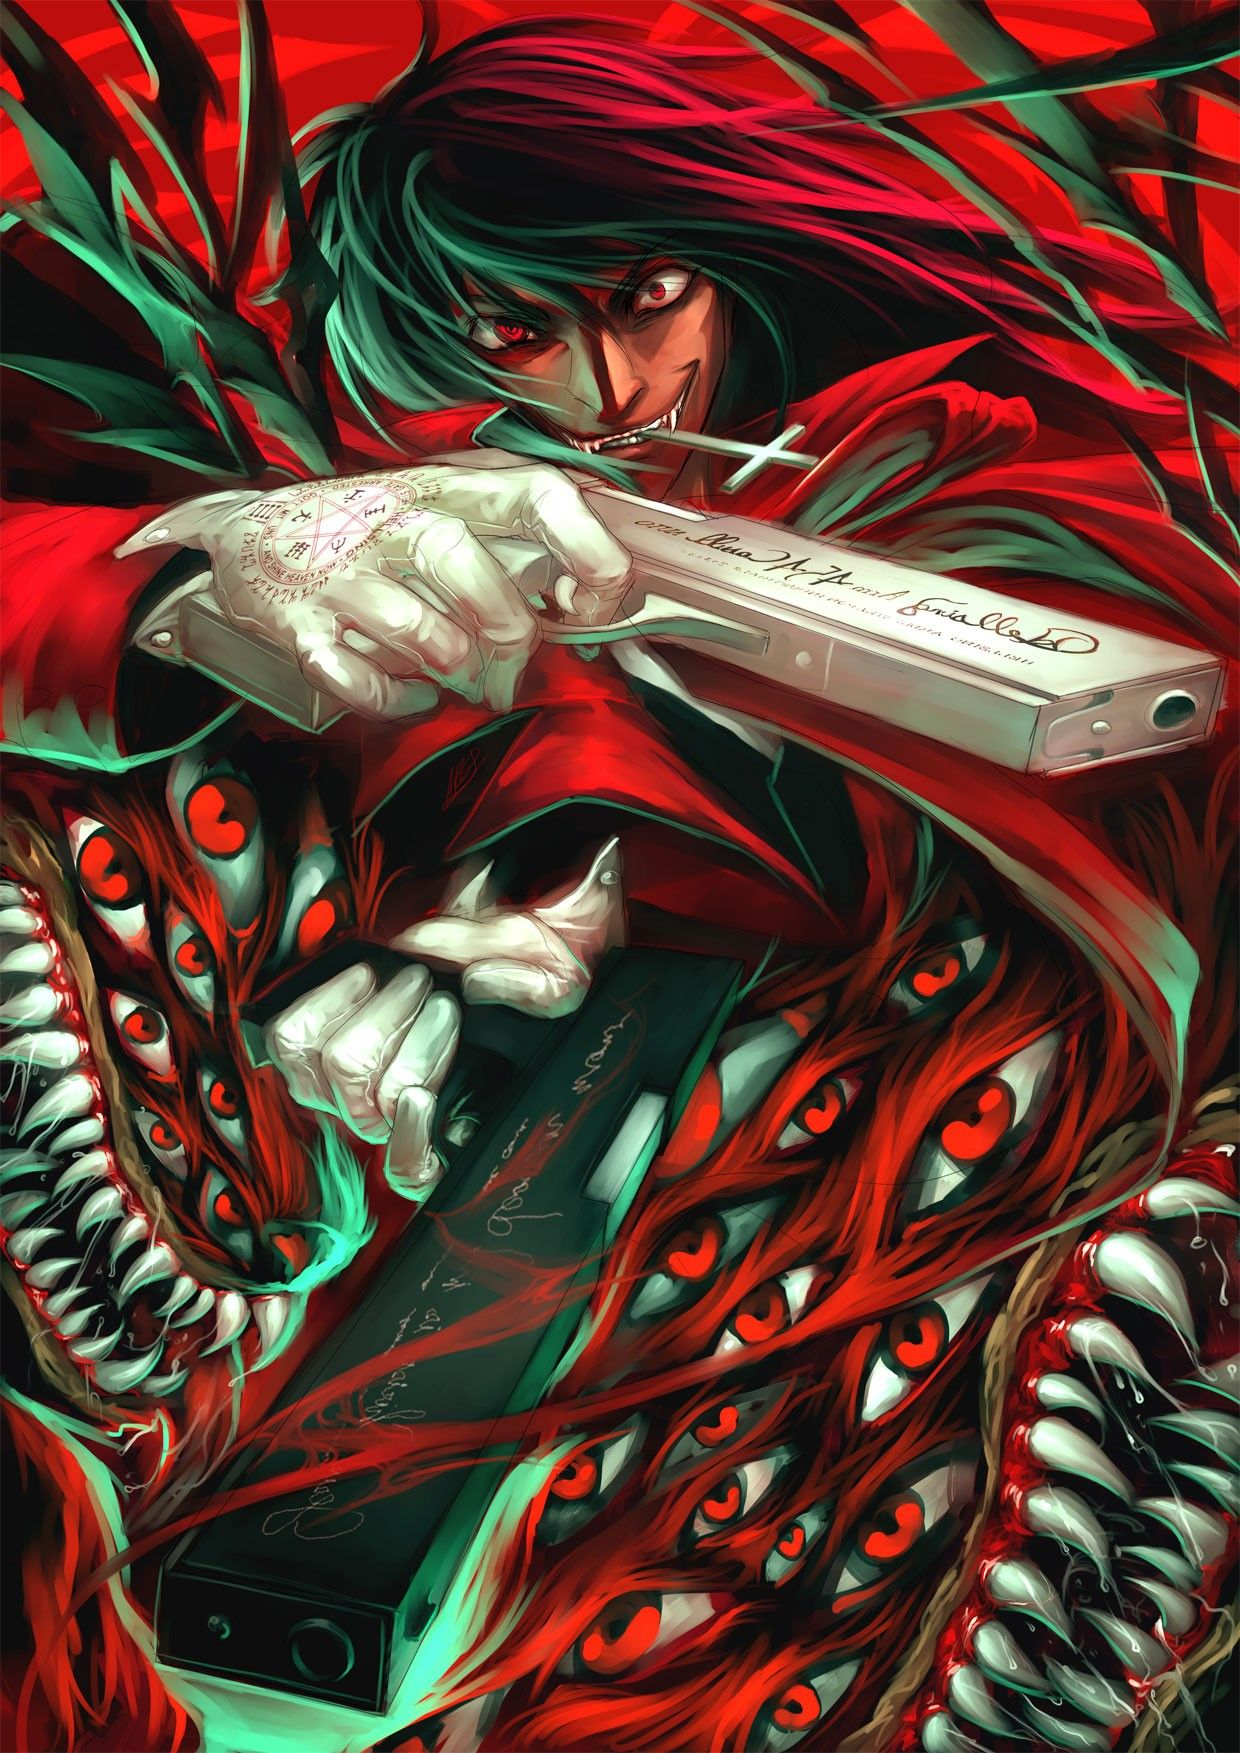 Anime wallpaper 1240x1753 hellsing alucard pistol hd - Anime hellsing wallpaper ...